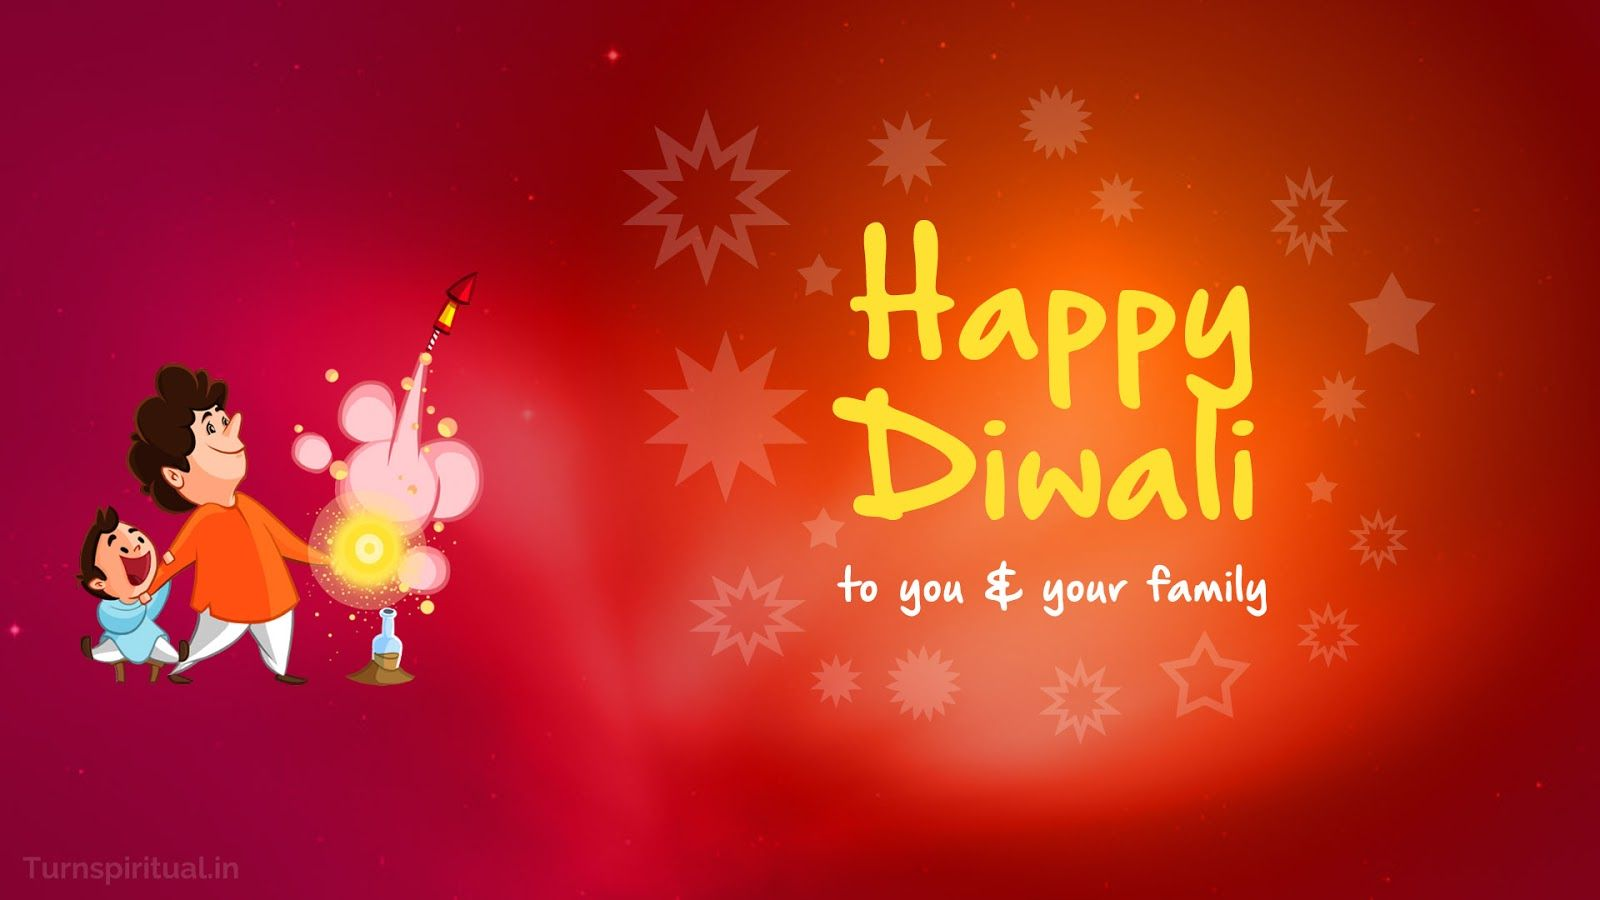 Happy diwali deepavali to you and your family members diwali happy diwali deepavali to you and your family members diwali wishes greeting m4hsunfo